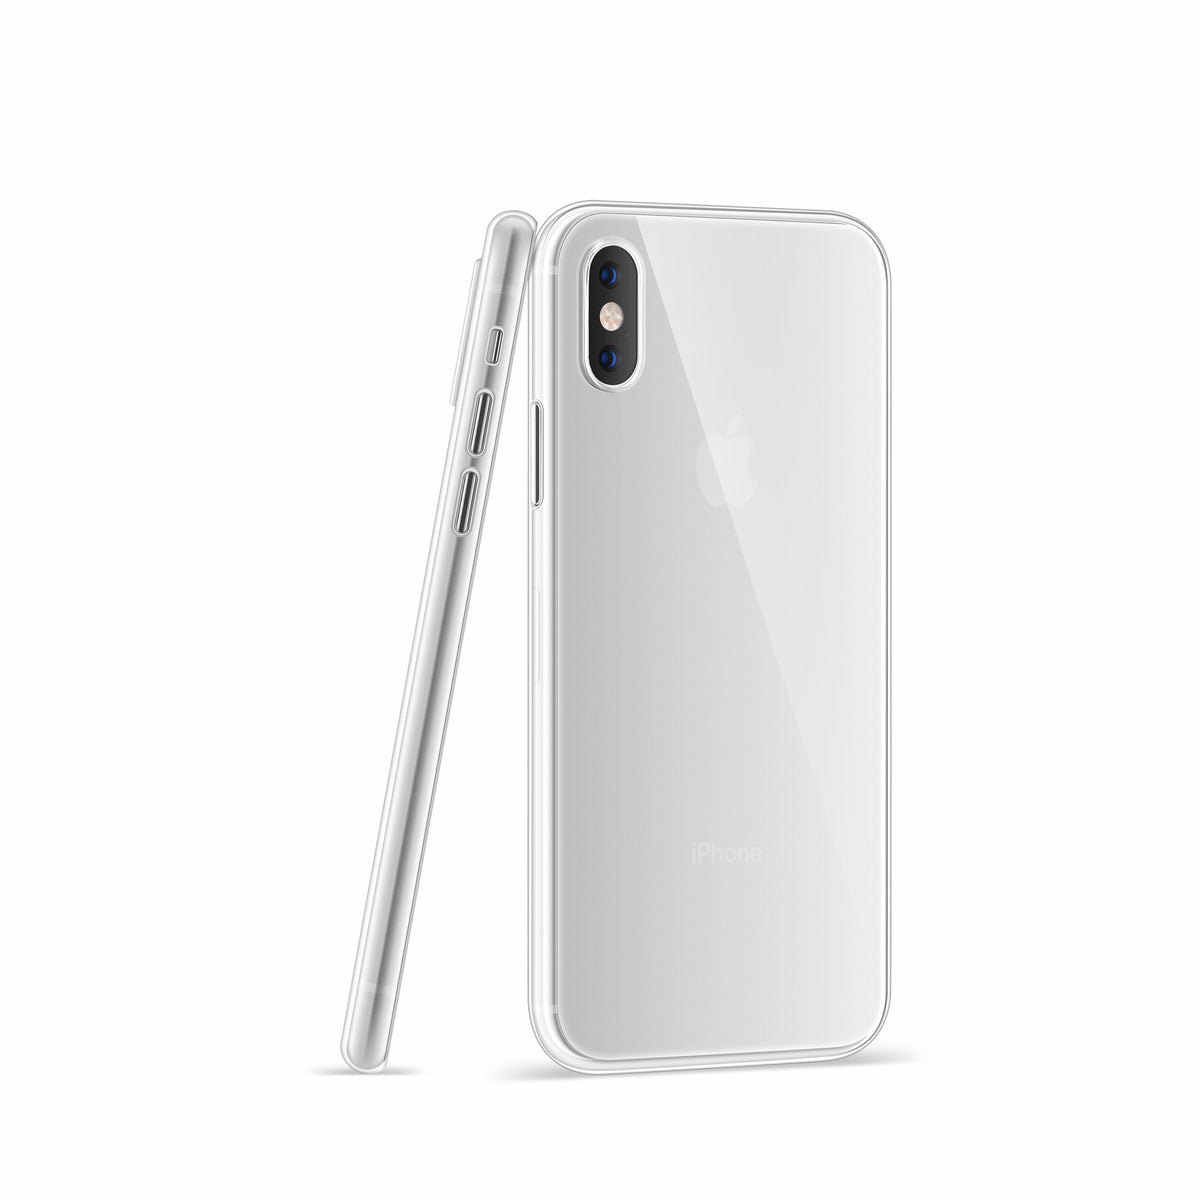 Go Original iPhone XS Max Slim Case